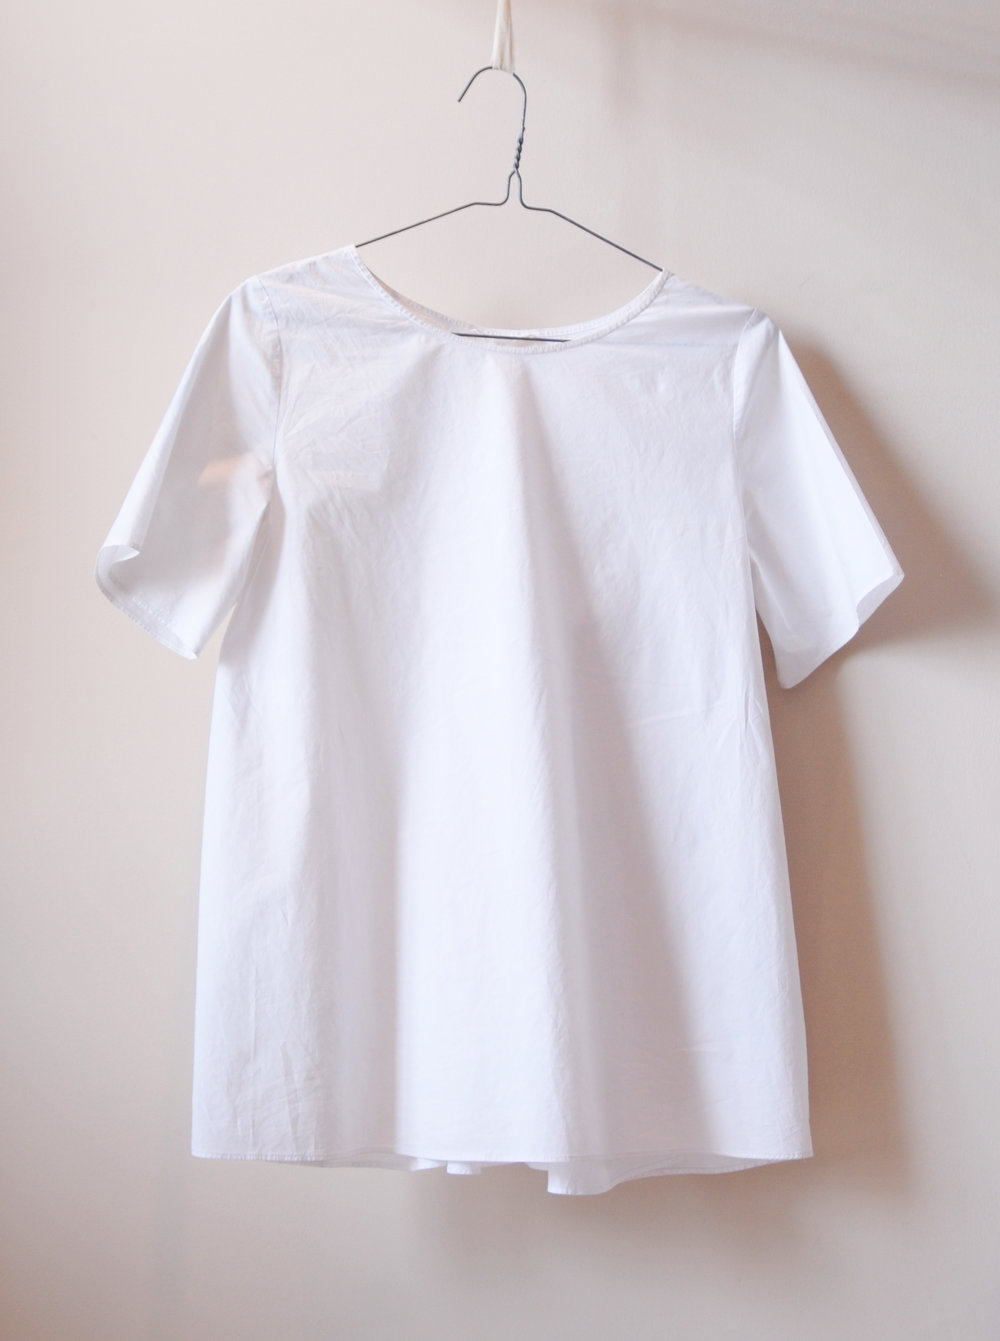 Cos Blouse.jpg